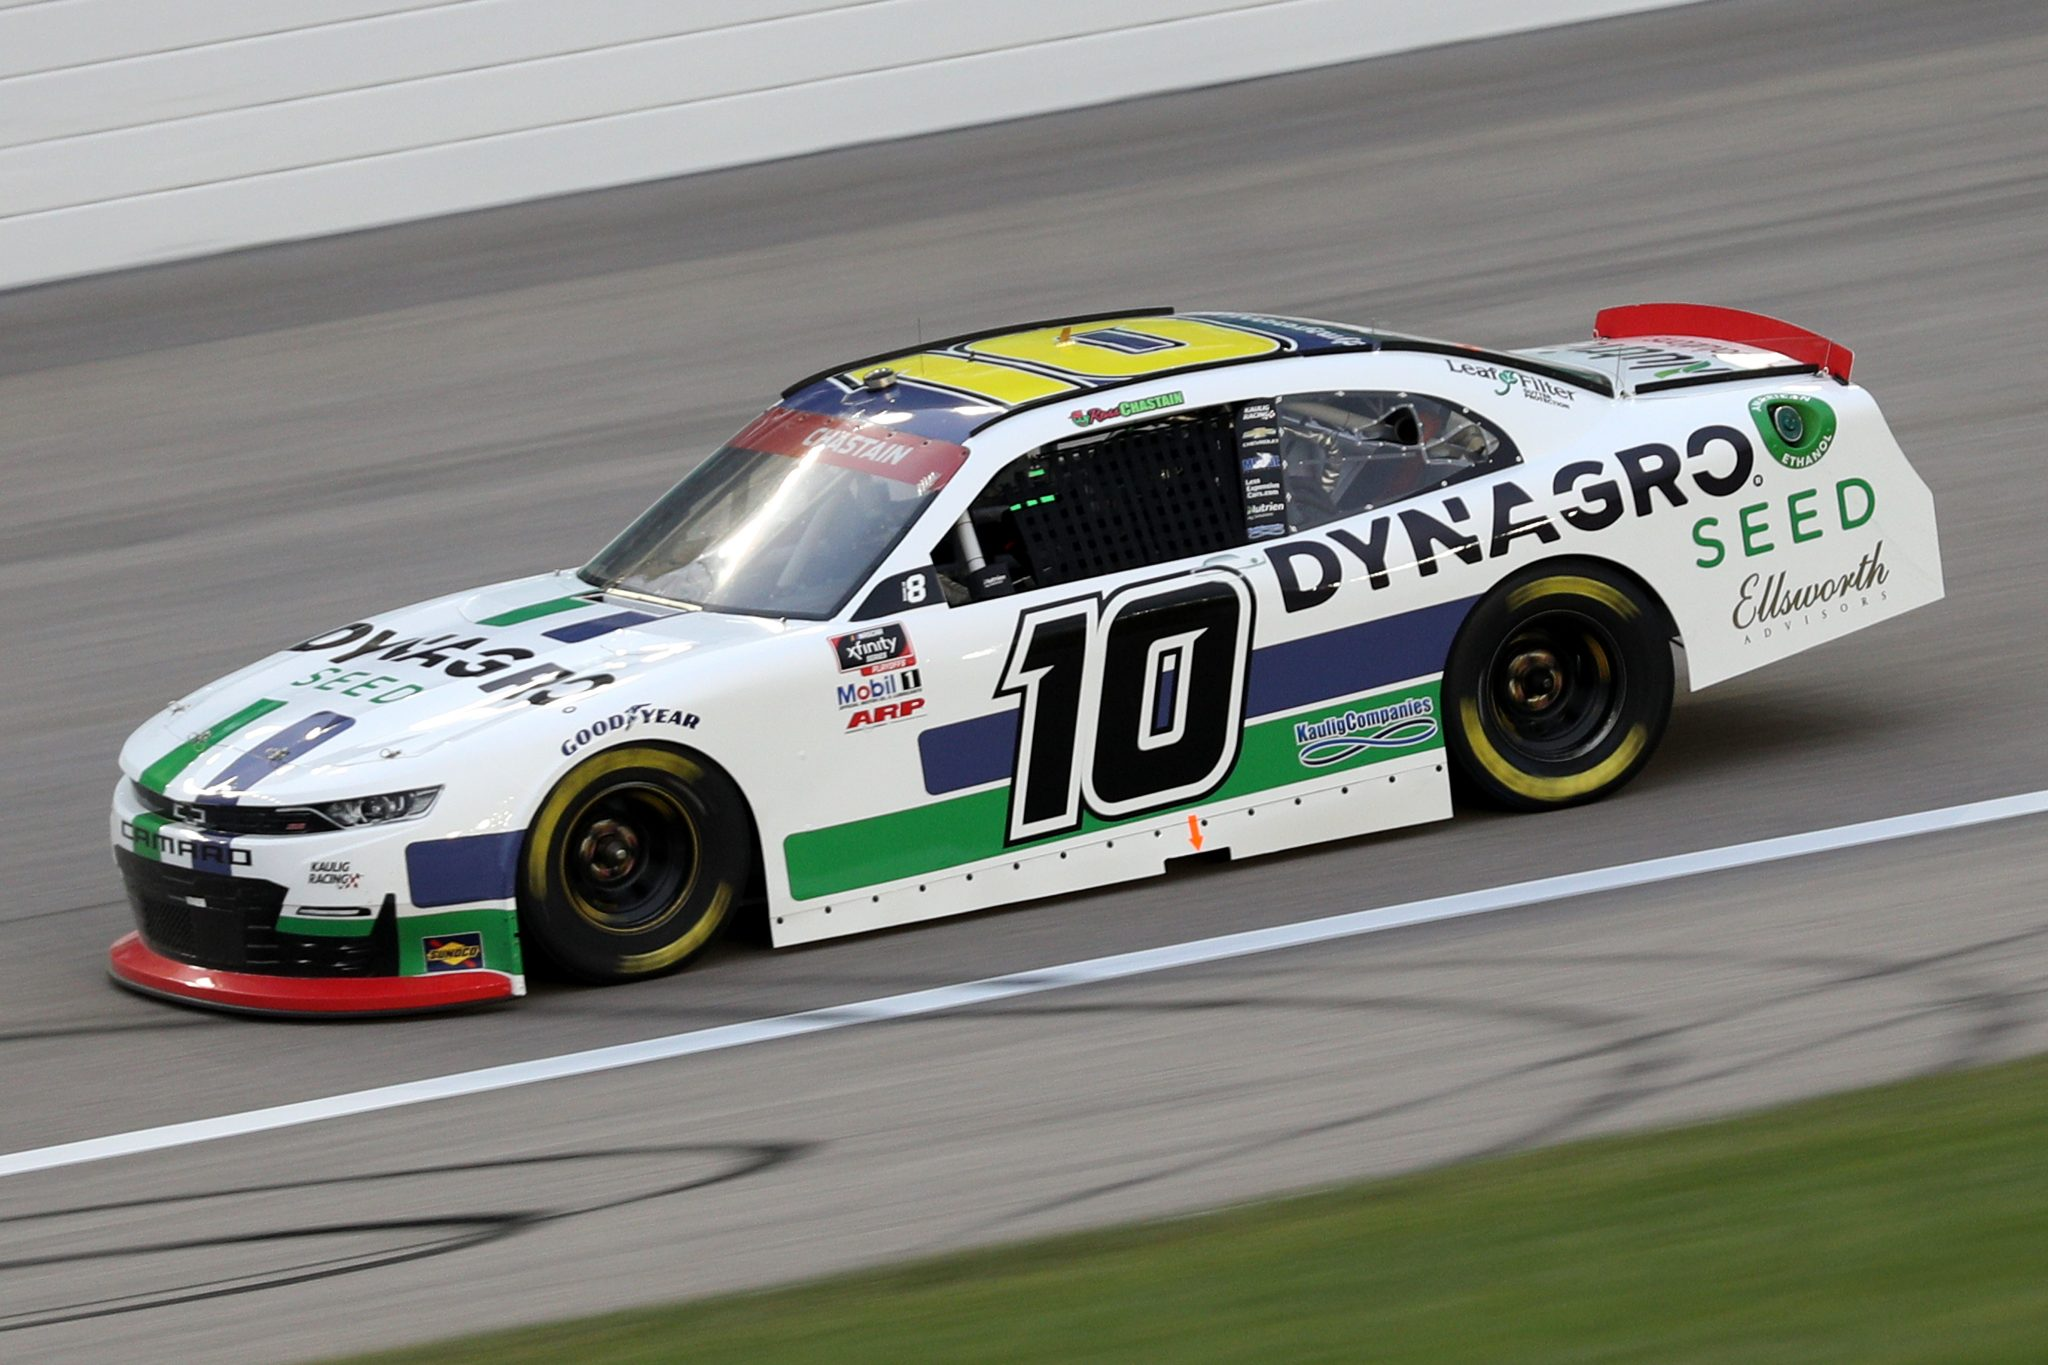 KANSAS CITY, KANSAS - OCTOBER 17: Ross Chastain, driver of the #10 Dyna-Gro Seed Chevrolet, drives during the NASCAR Xfinity Series Kansas Lottery 300 at Kansas Speedway on October 17, 2020 in Kansas City, Kansas. (Photo by Chris Graythen/Getty Images) | Getty Images